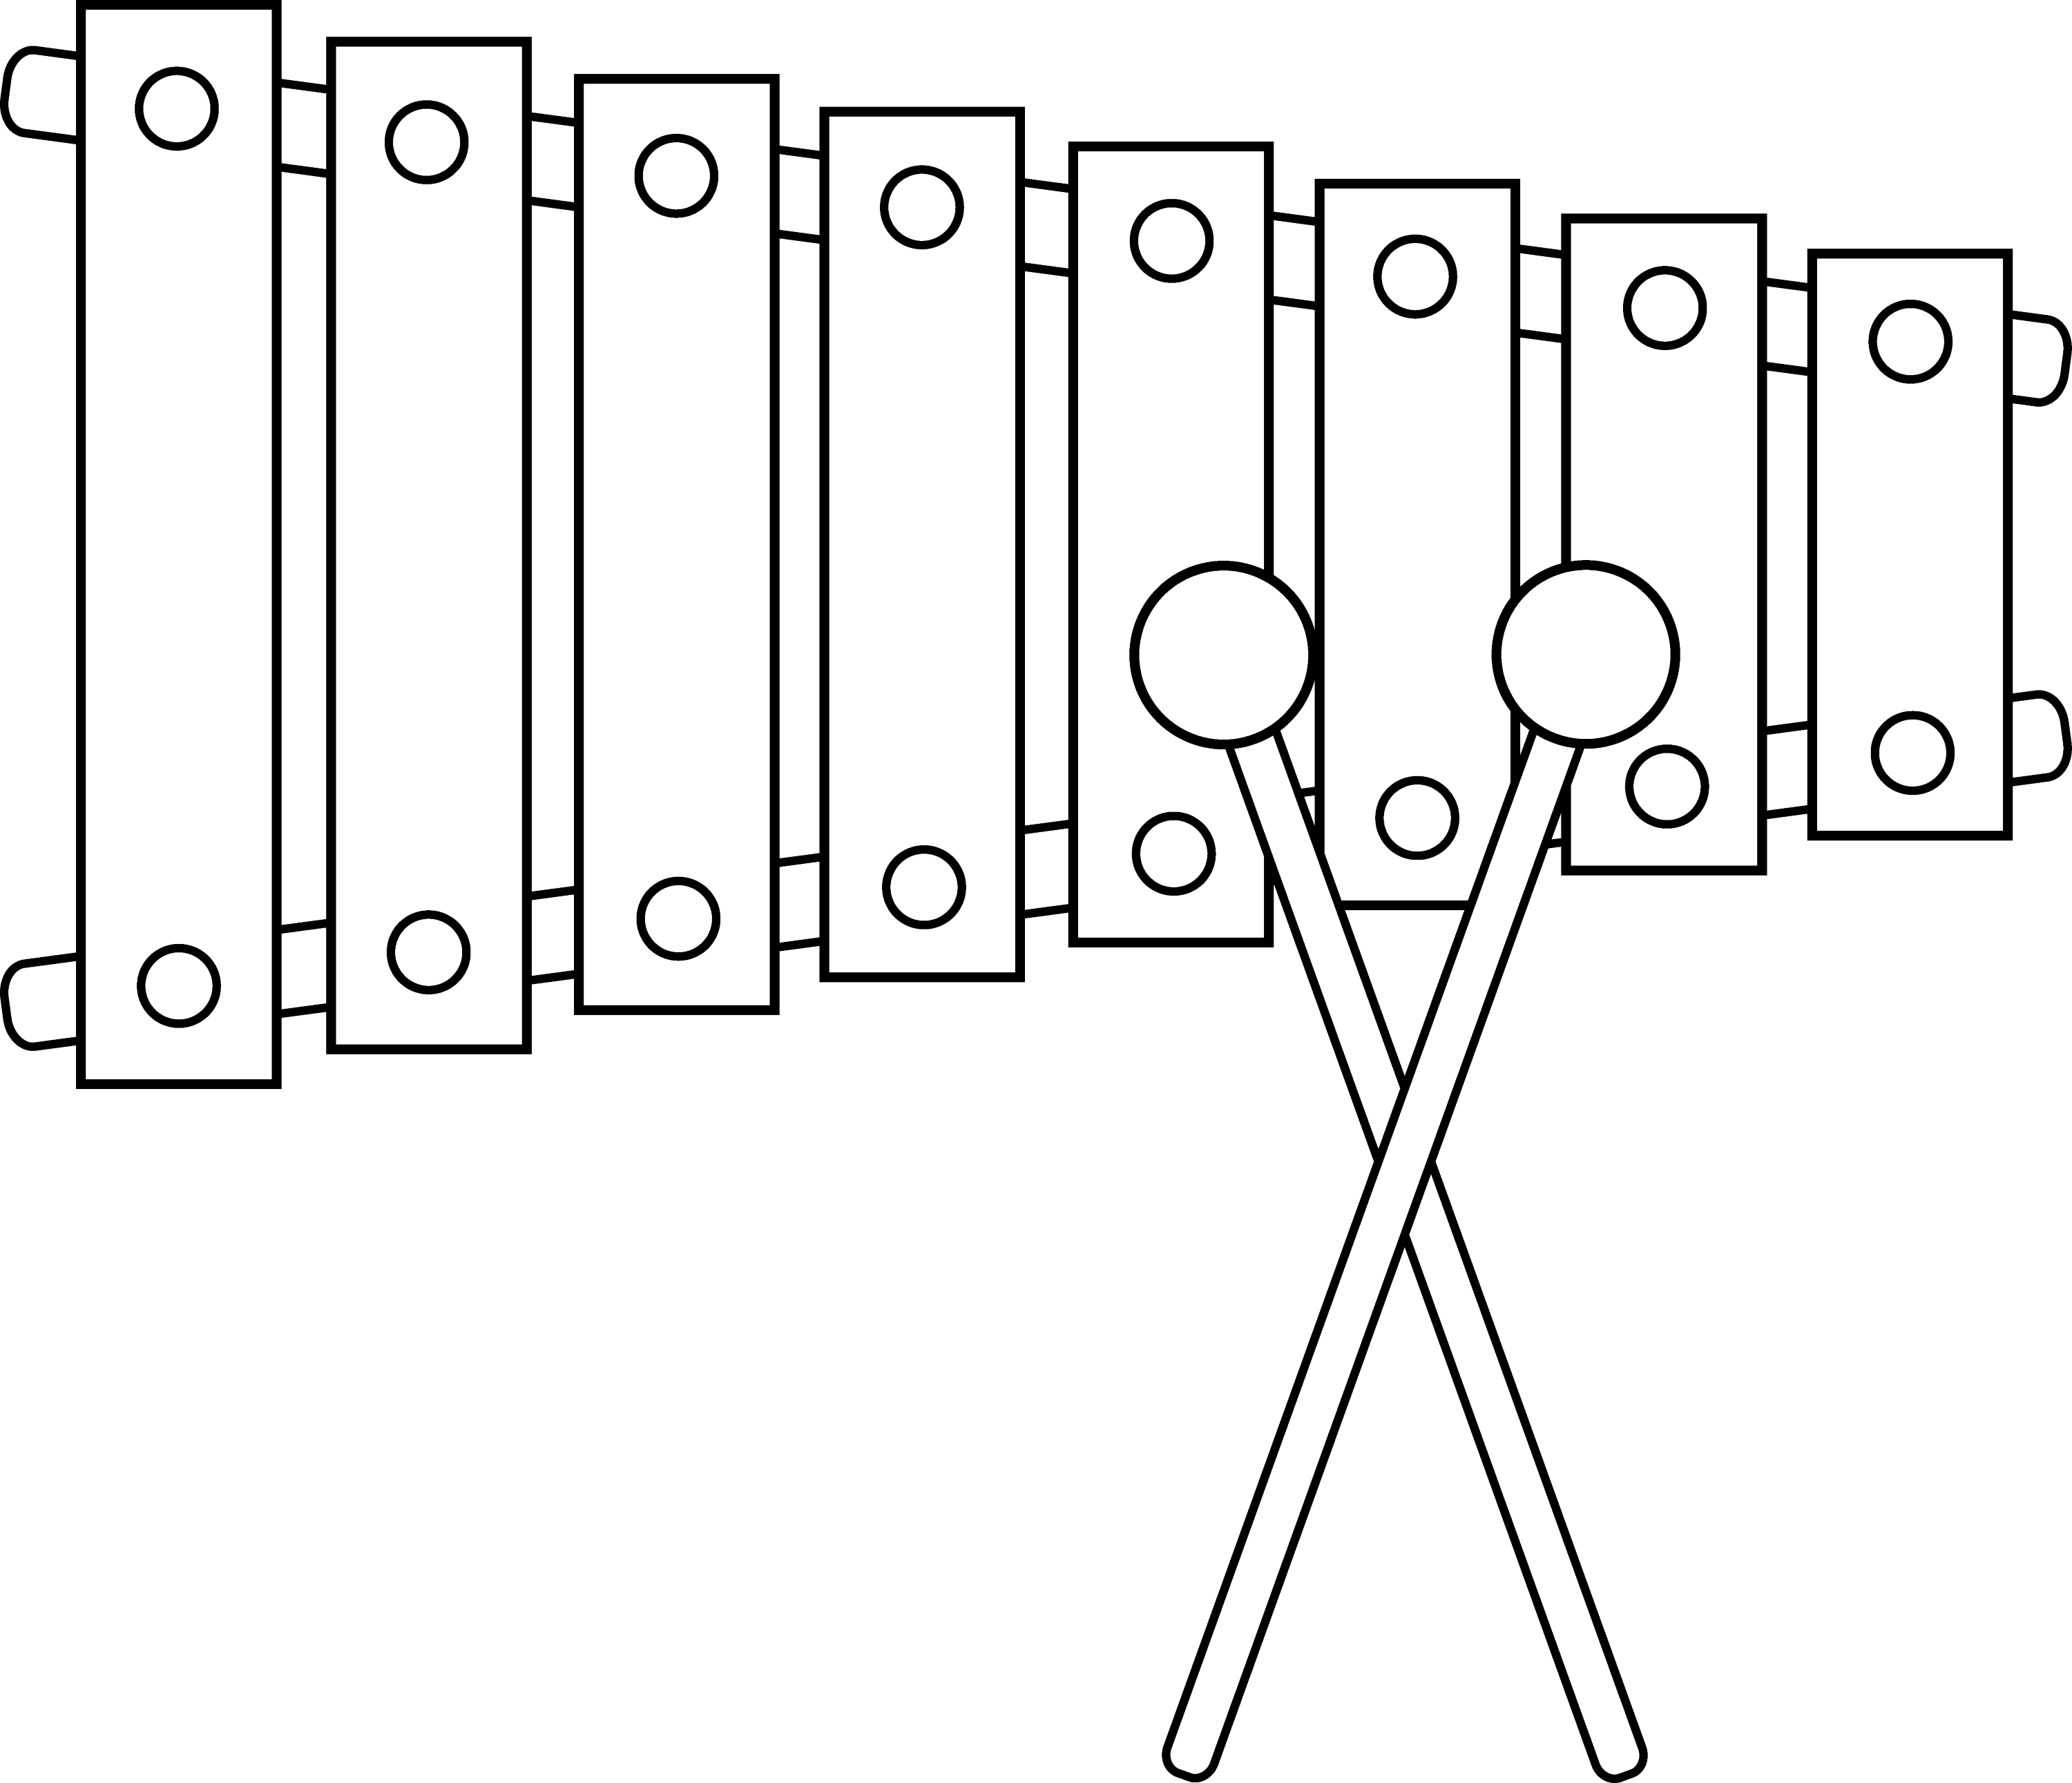 Xylophone Line Art - Free Clip Art